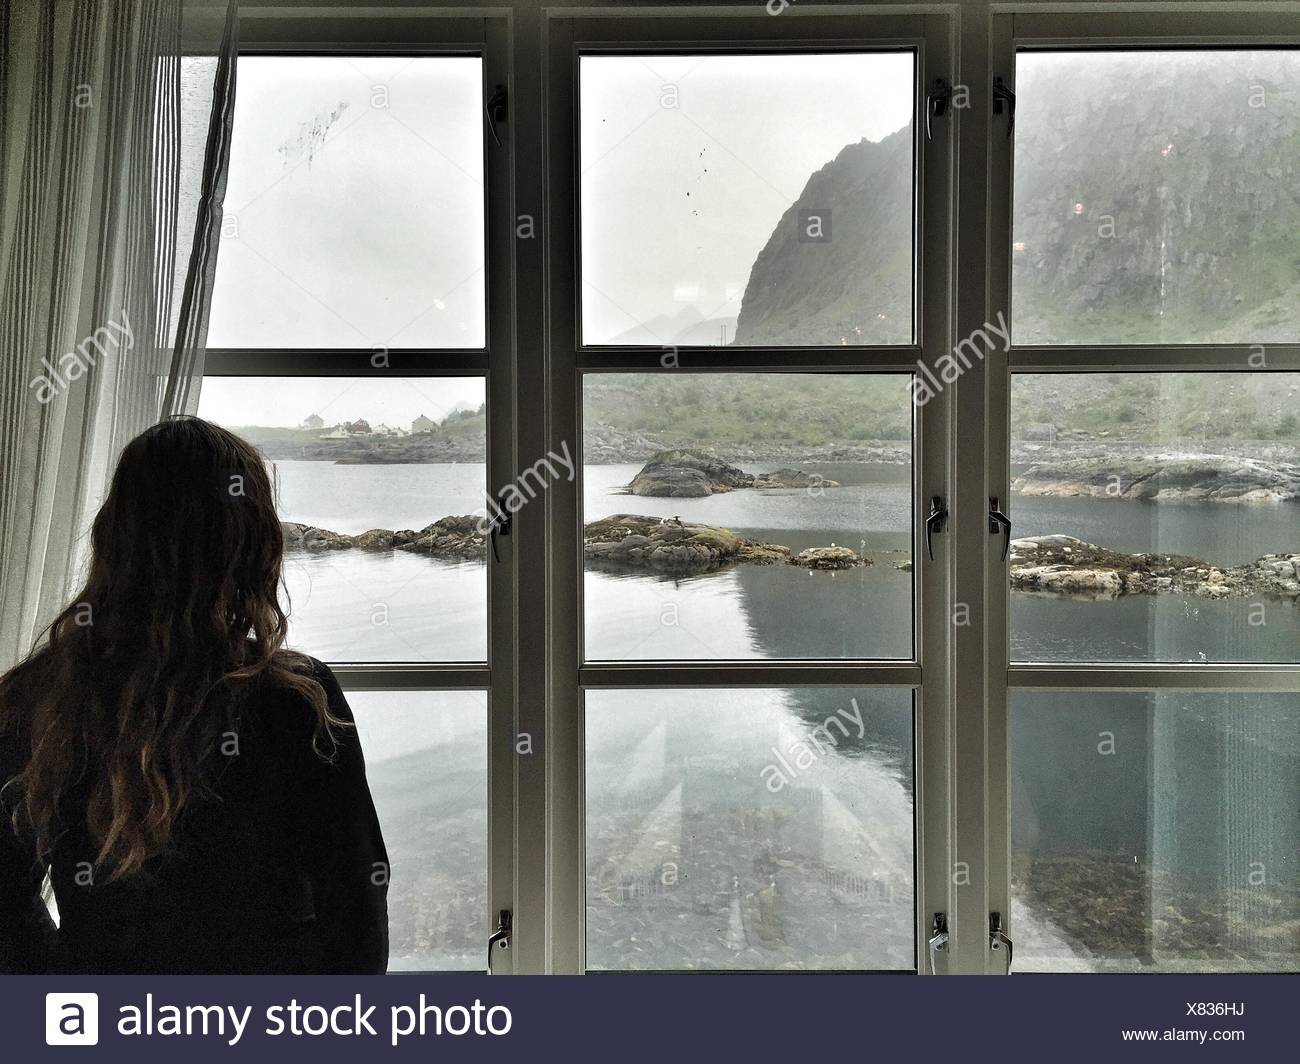 Rear View Of Woman Looking River And Mountain Through Window - Stock Image